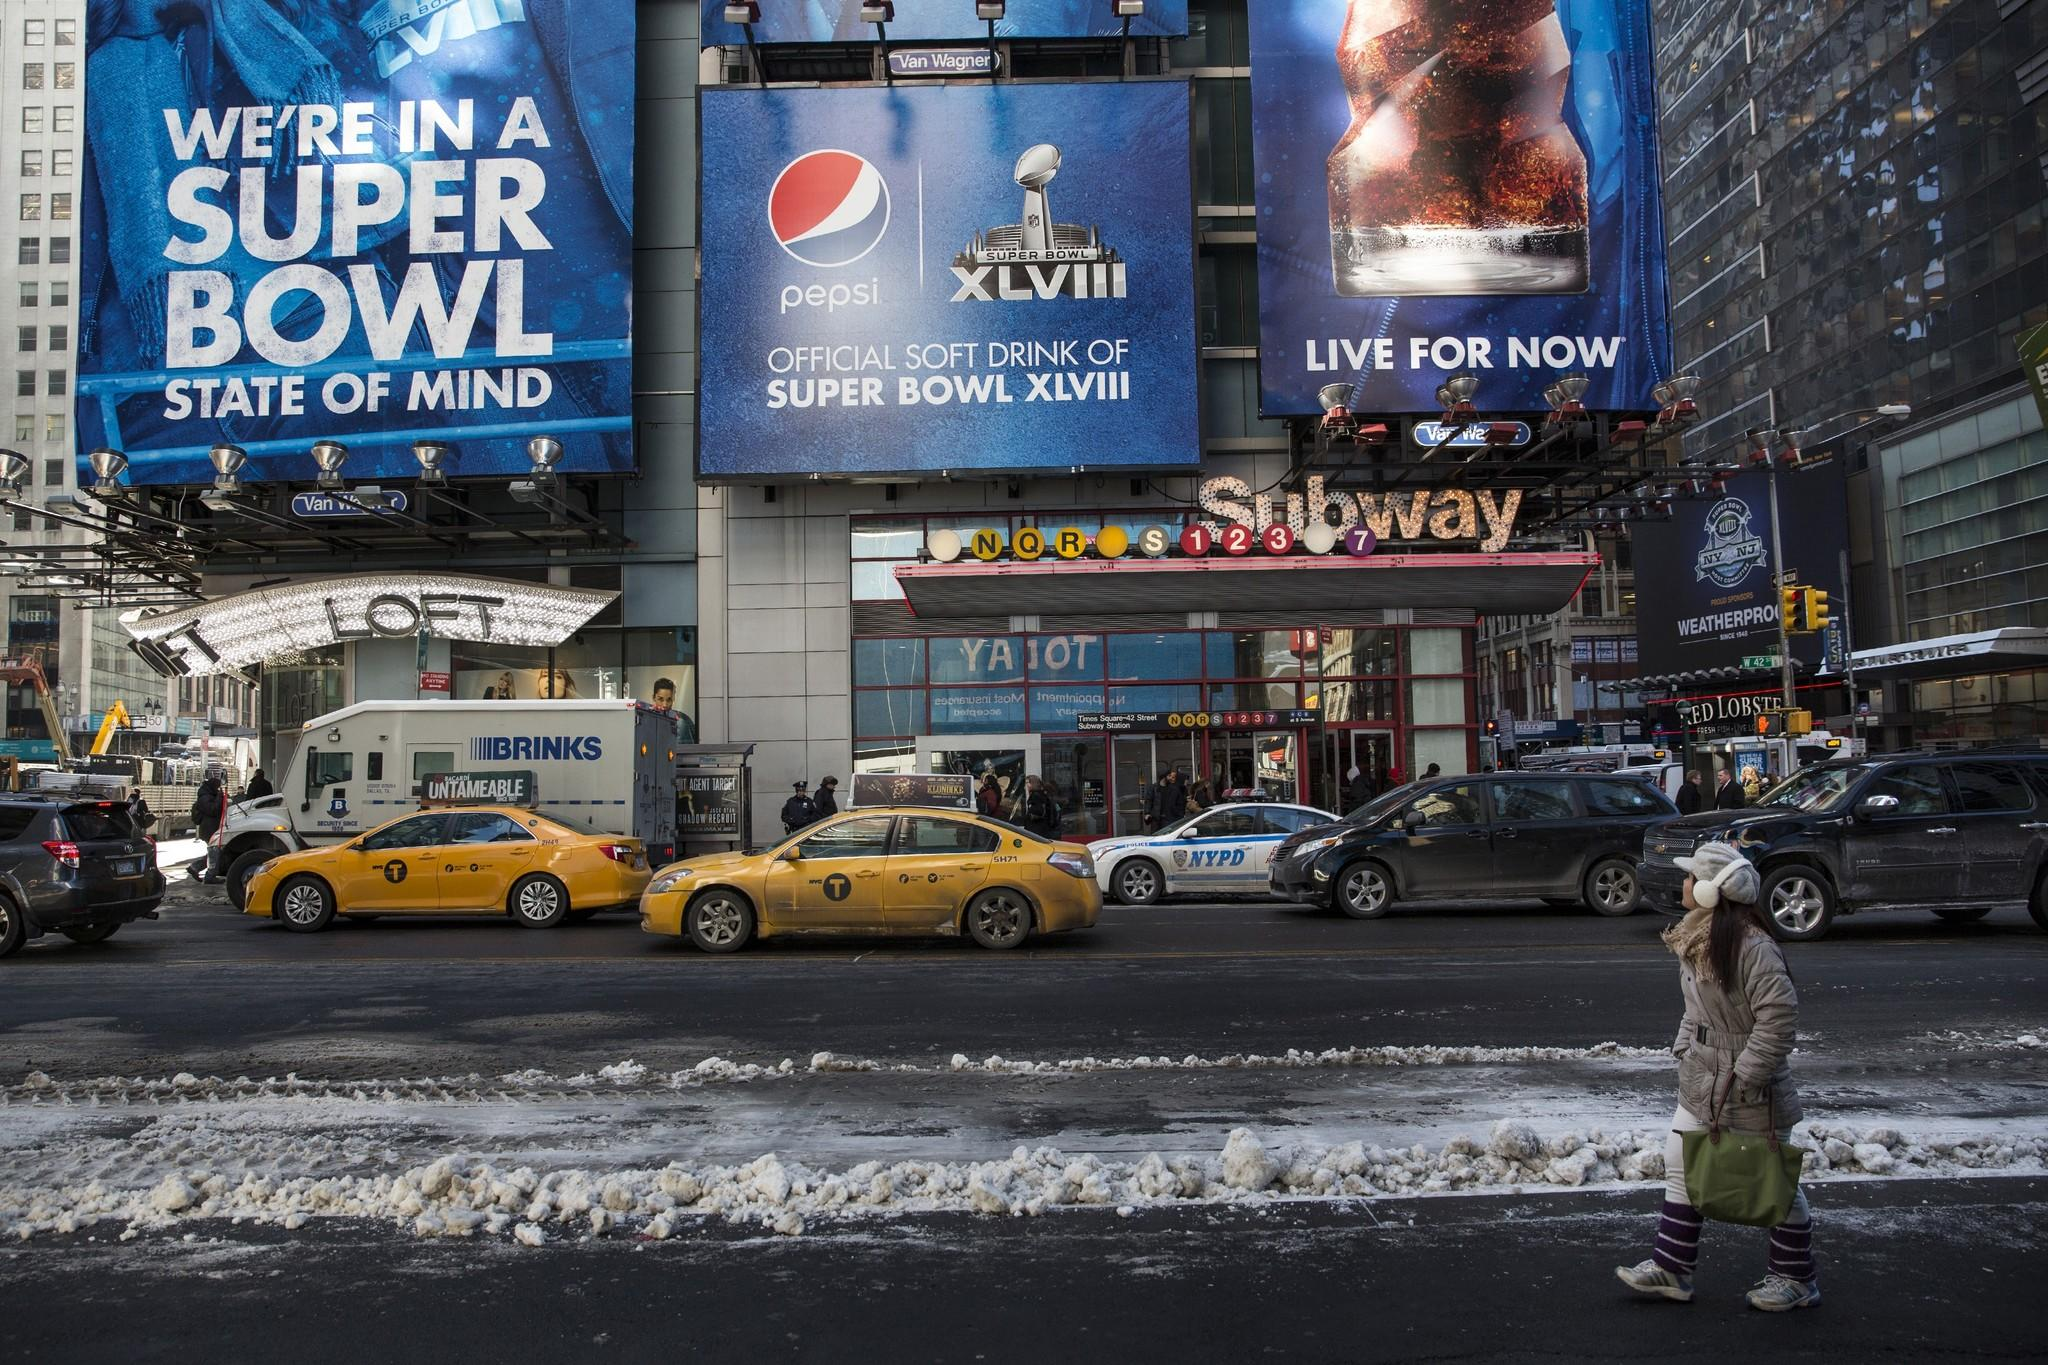 "NEW YORK, NY - JANUARY 24: A woman walks past an advertisement referencing Super Bowl XLVIII, which will be played in East Rutherford, NJ in two weekends, on January 24, 2014 in Times Square in New York City. In preperation for the Super Bowl, New York City is turning sections of Times Square and Broadway into ""Super Bowl Boulevard,"" which will feature events such as games, concerts and a toboggan run."